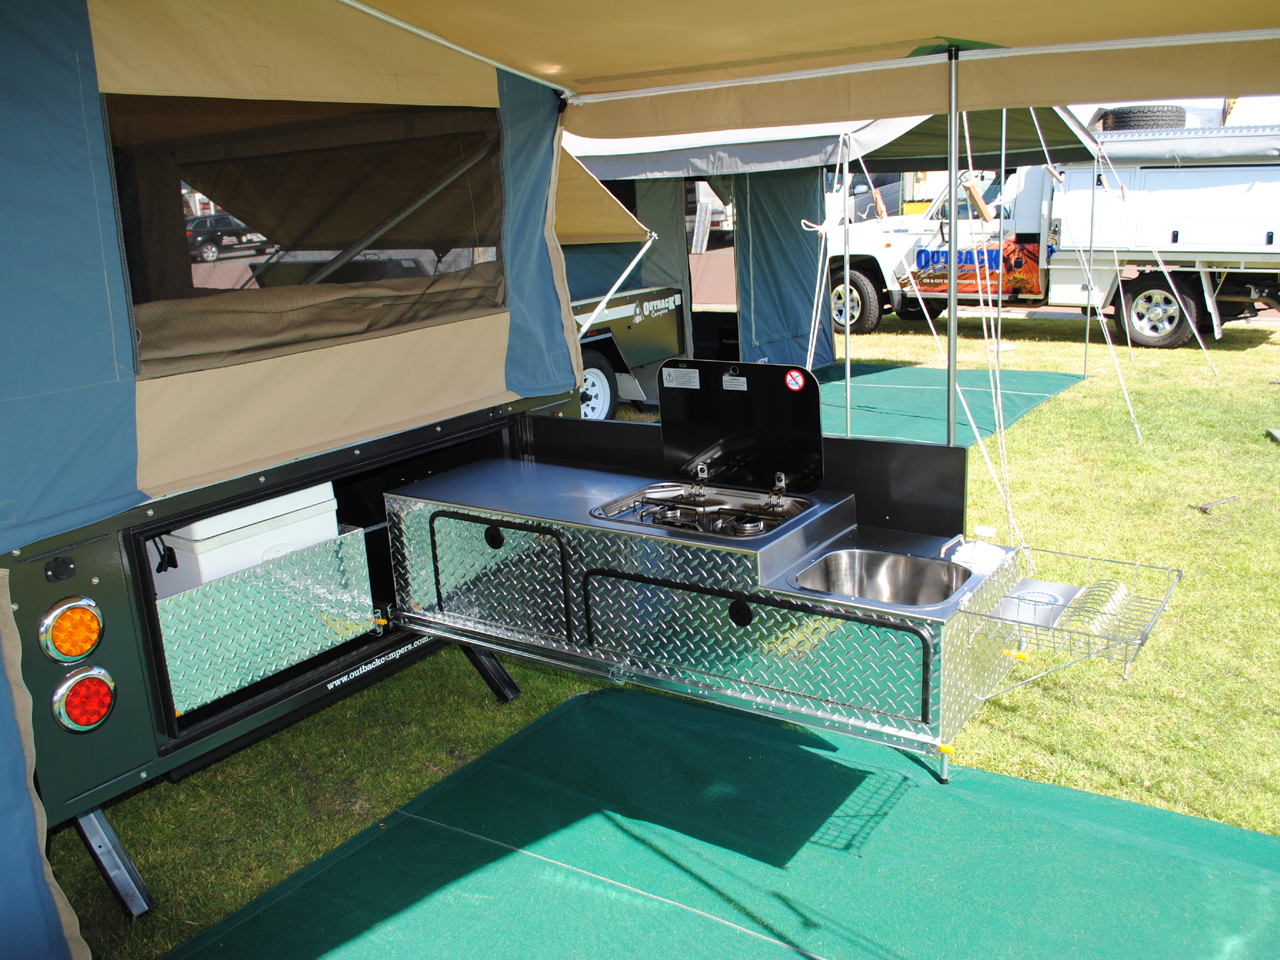 Caravan With Slide Out Kitchen Nullarbor On Road Camper Outback Campers Camper